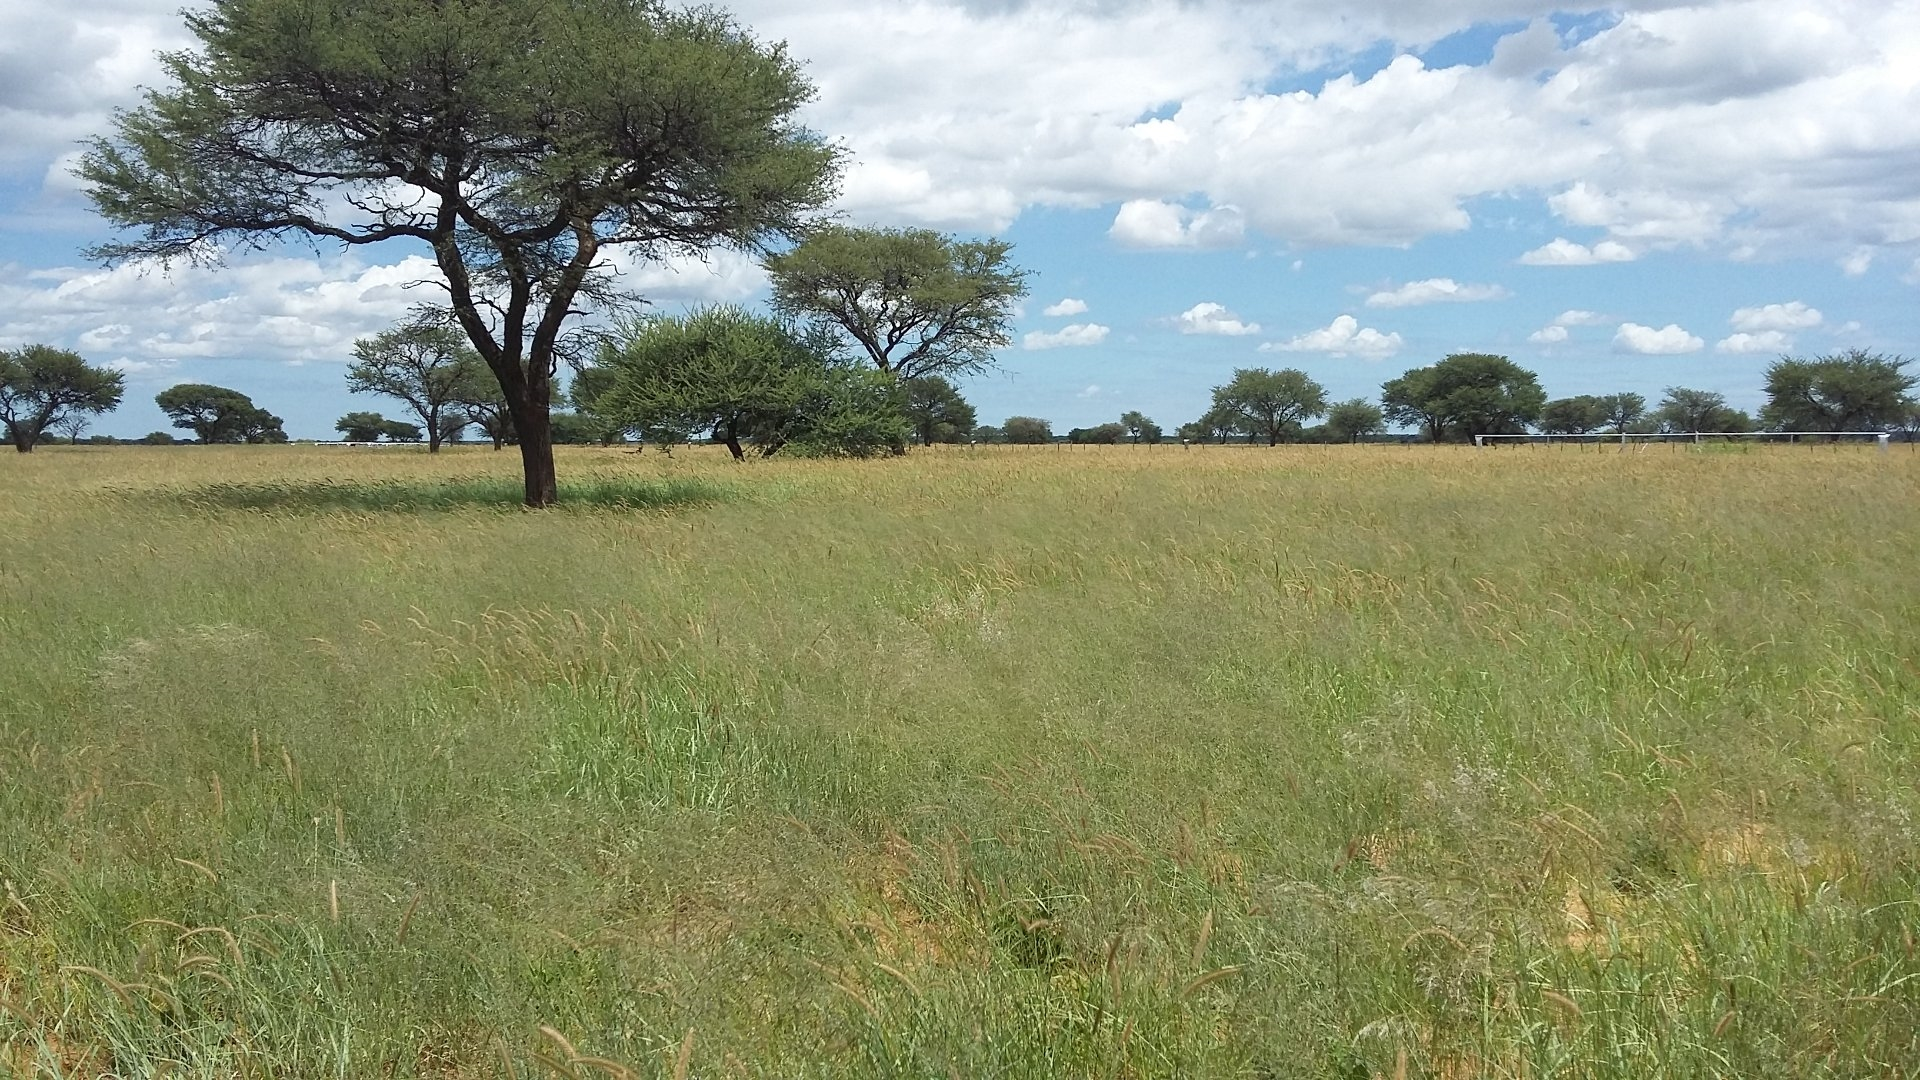 Bloubuffel cultivated pastures